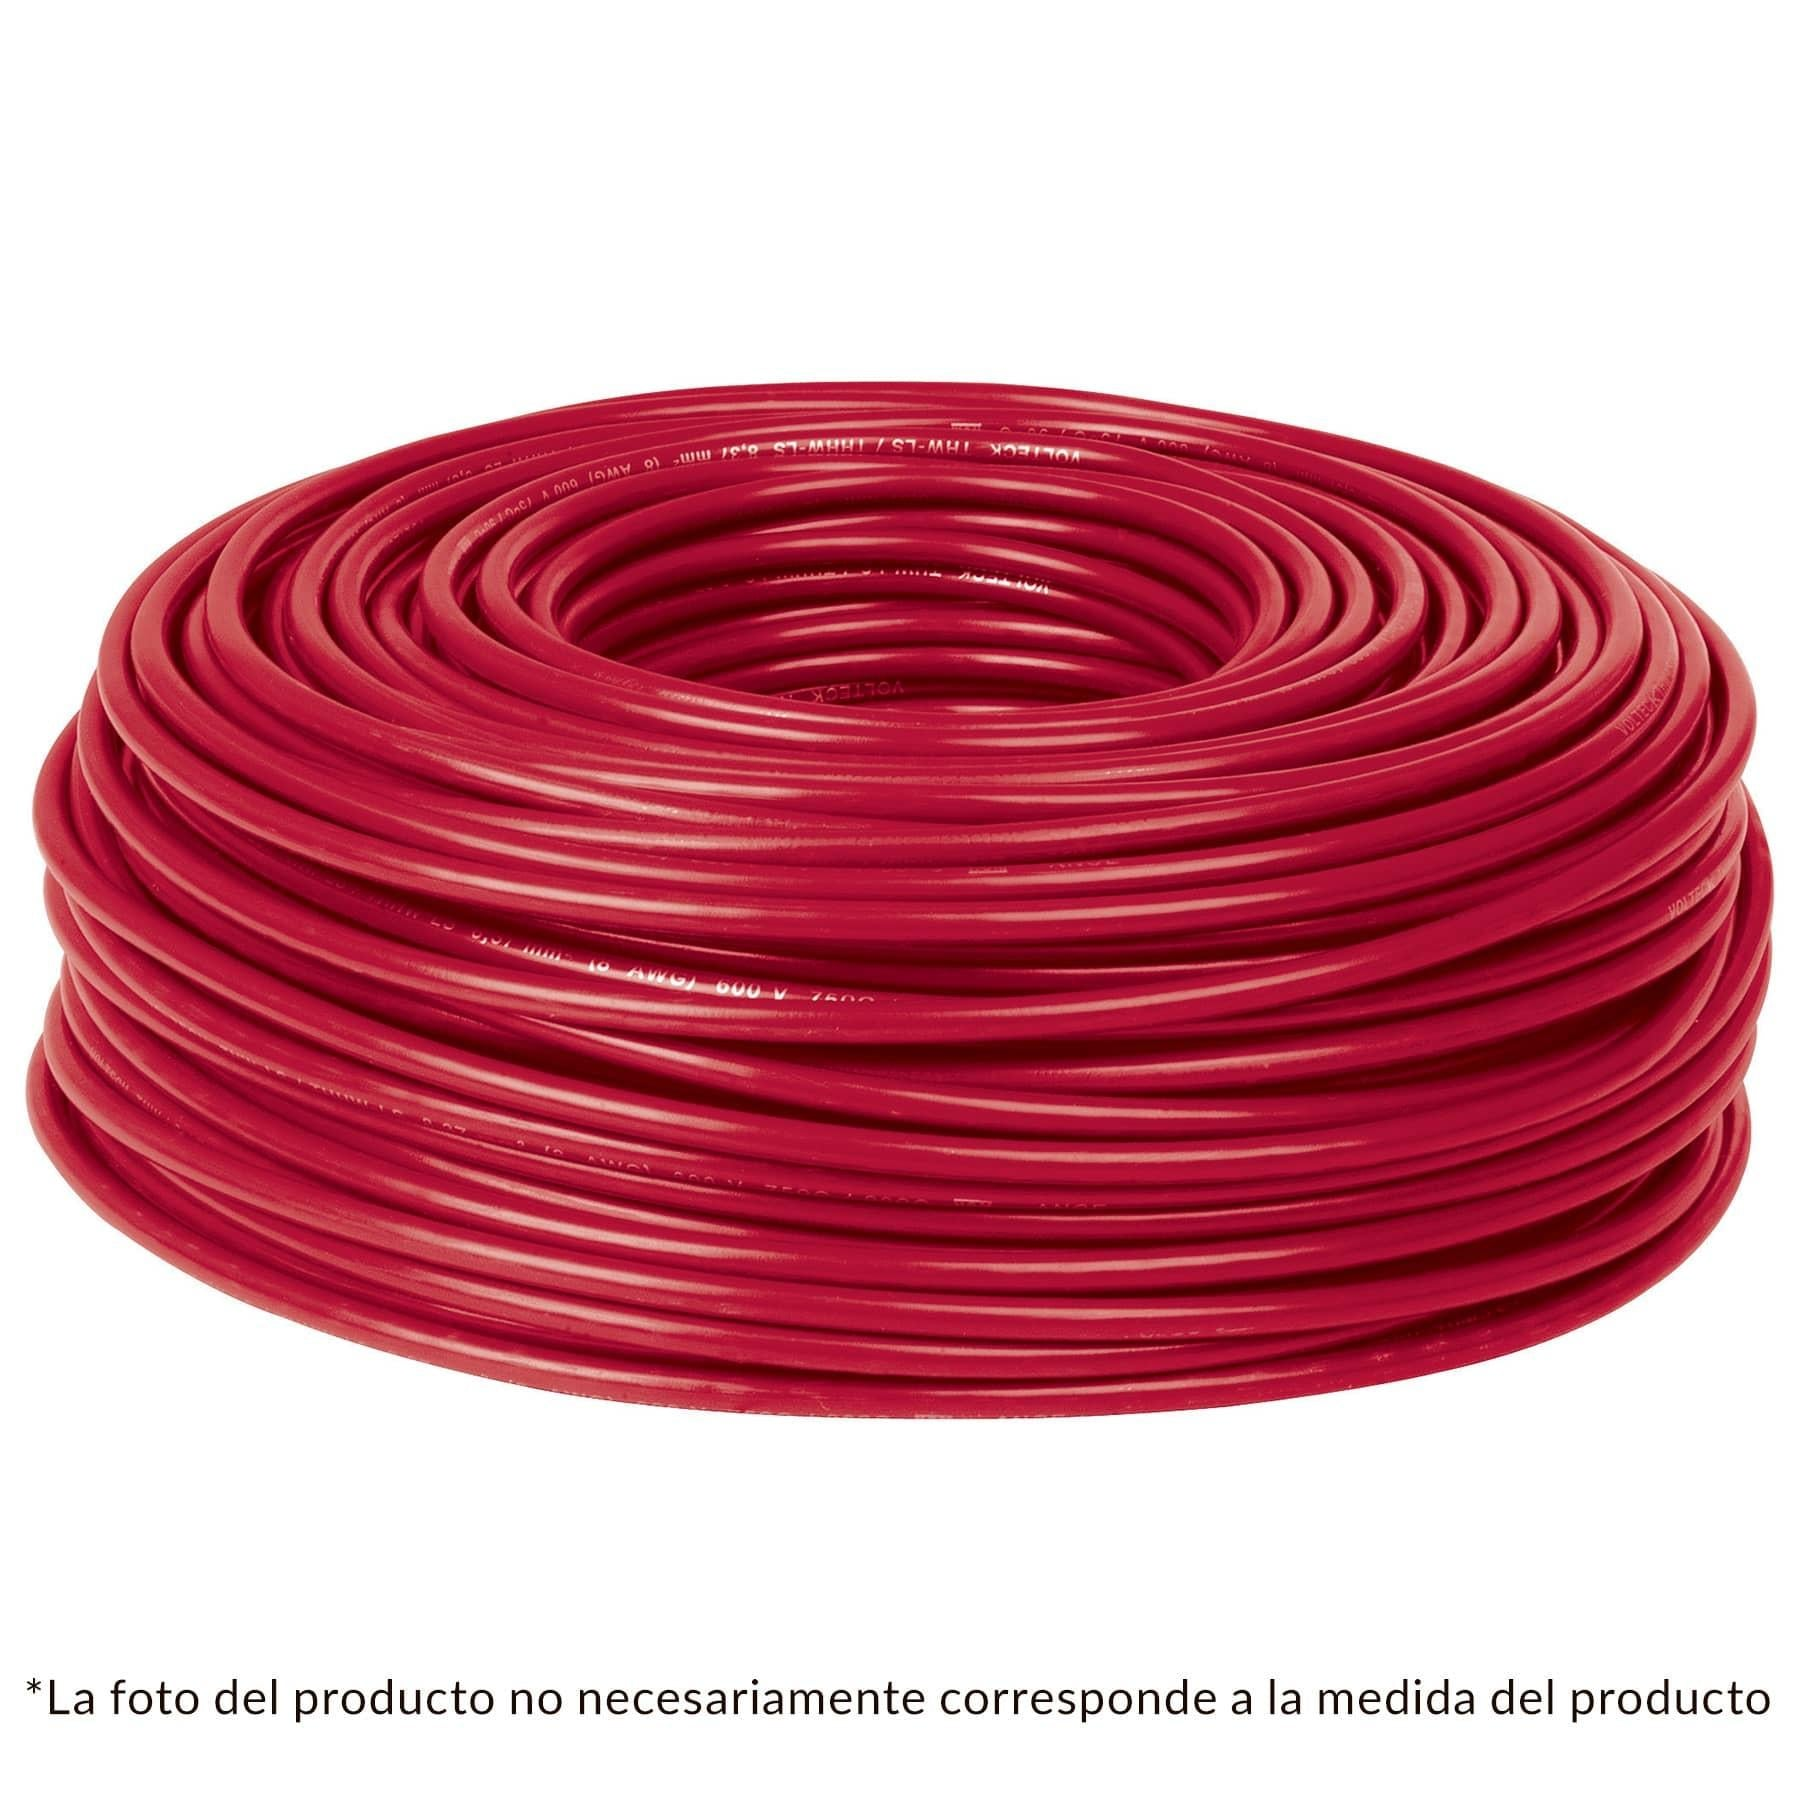 CABLE THW NO 14 ROJO C/100 MTS.